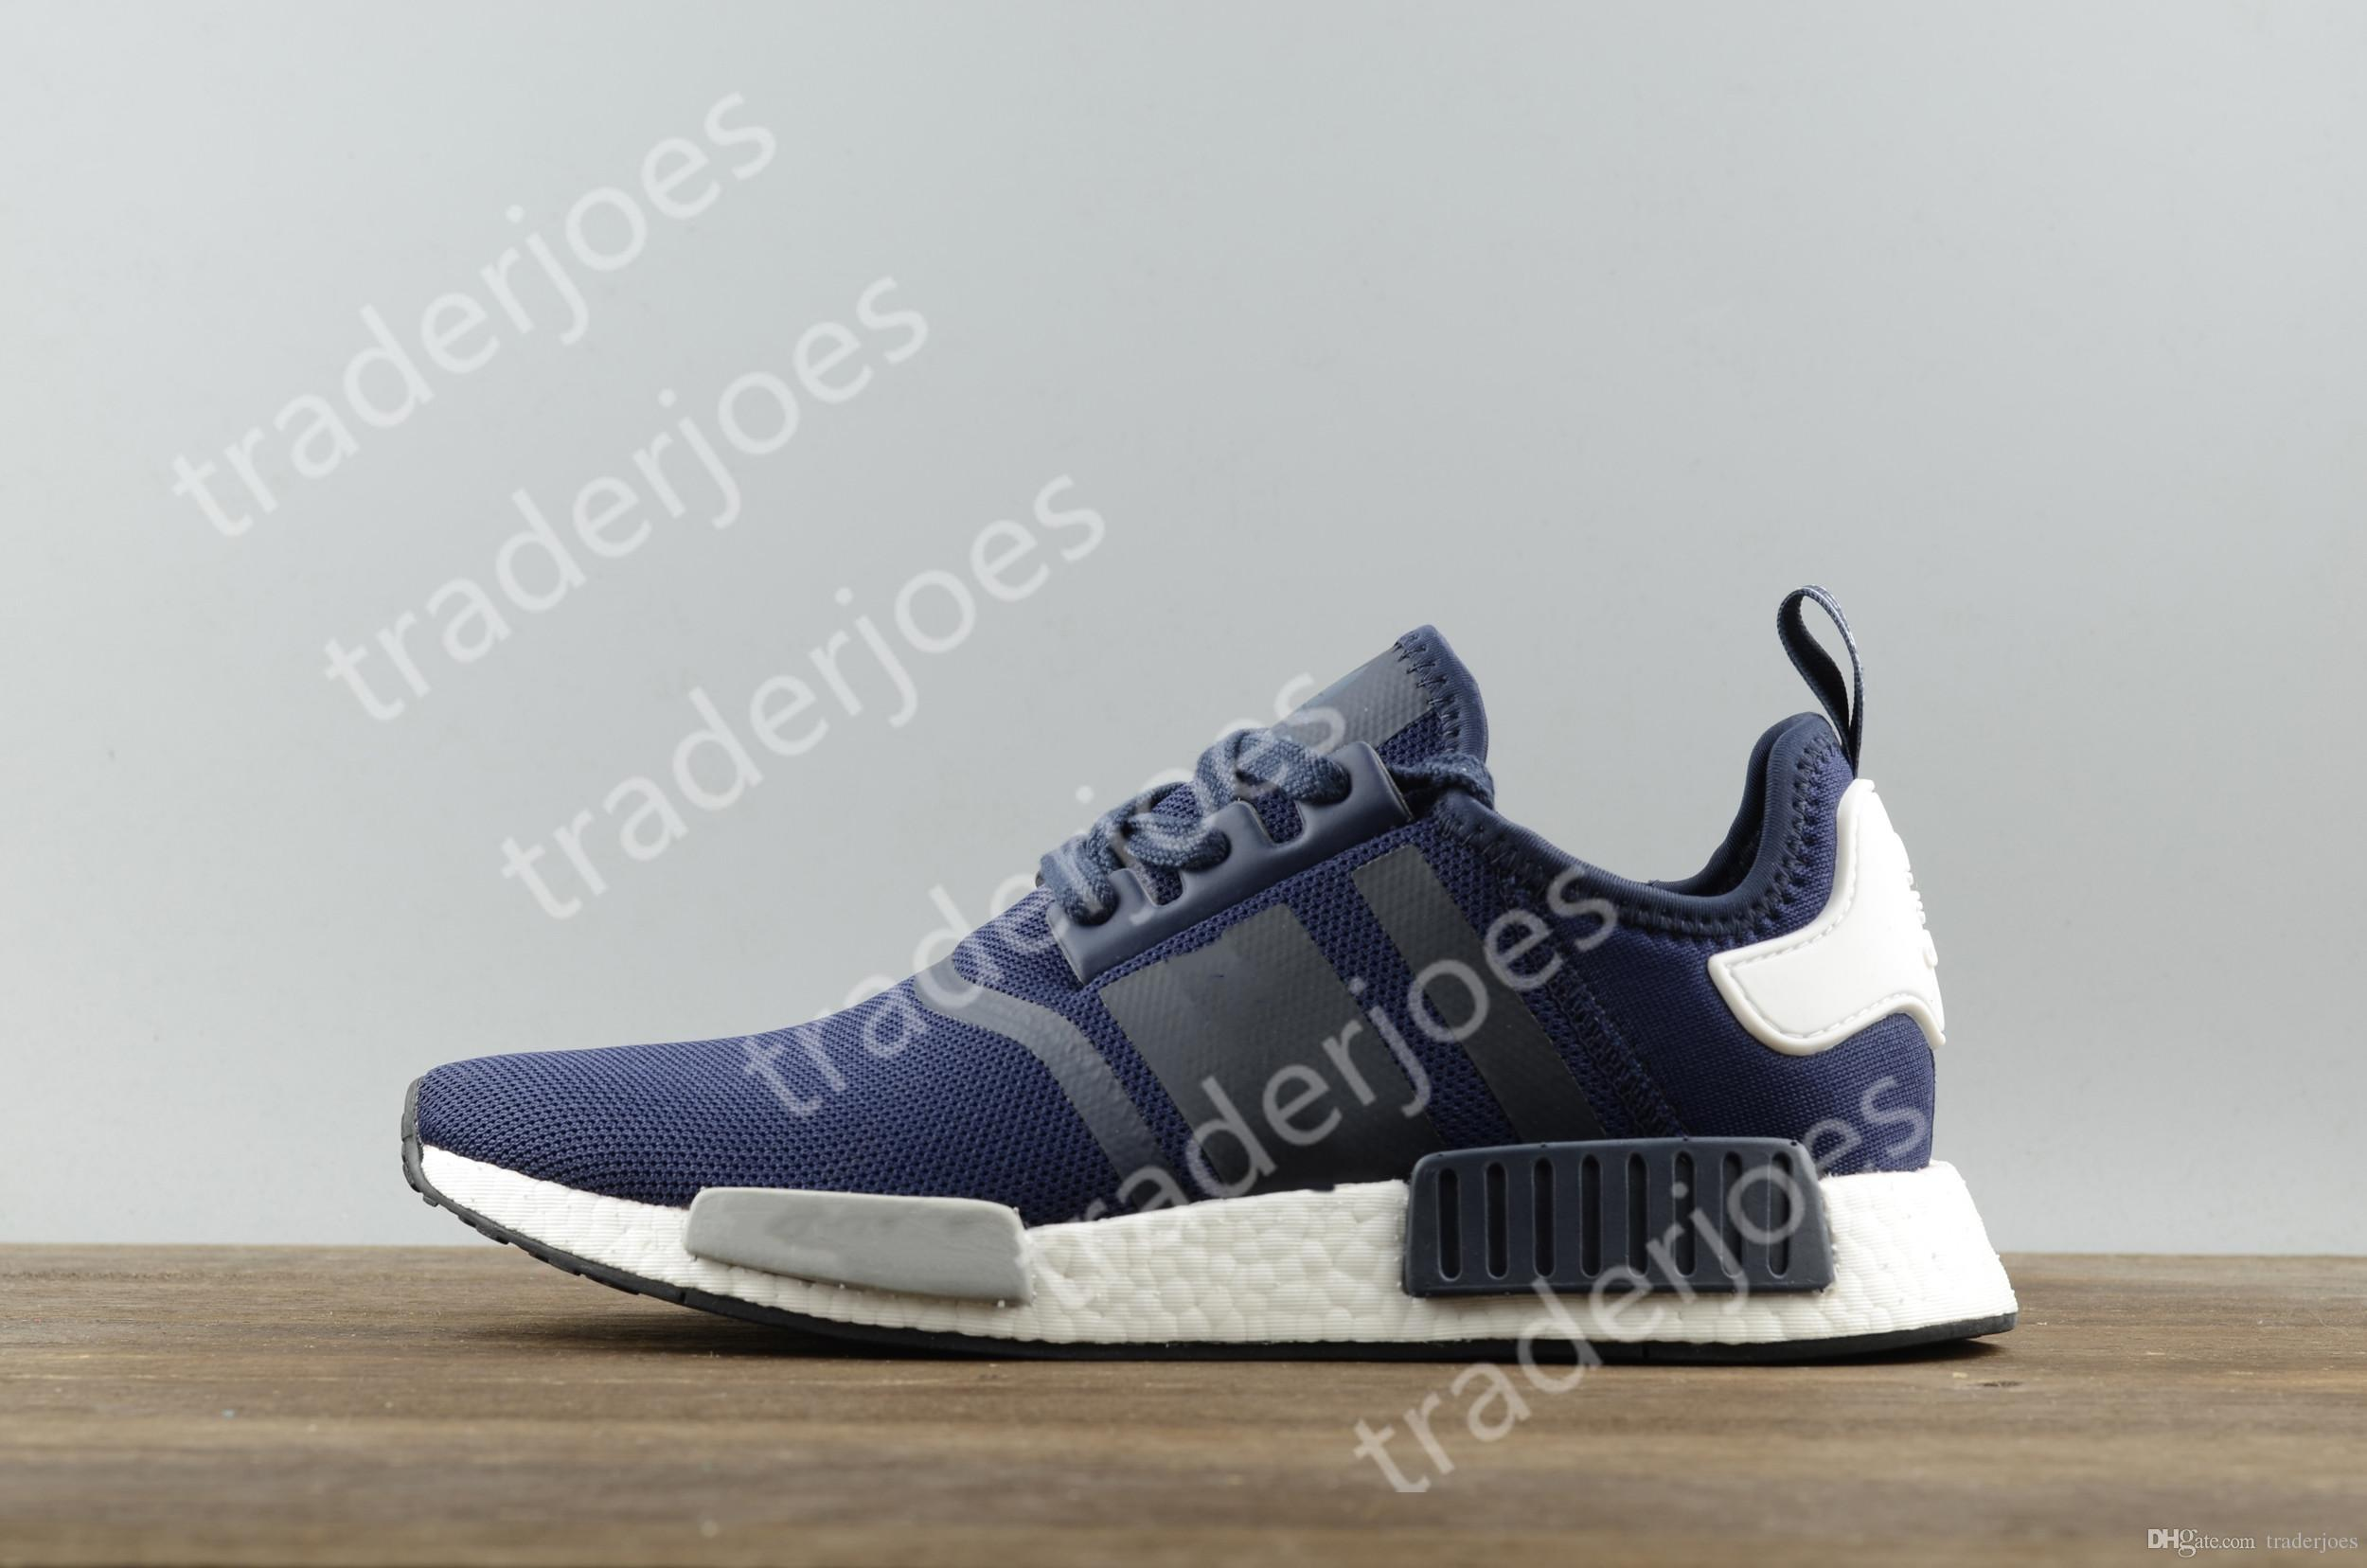 Gucci Adidas Shoes. Adidas NMD Custom \ Gucci Shoes S